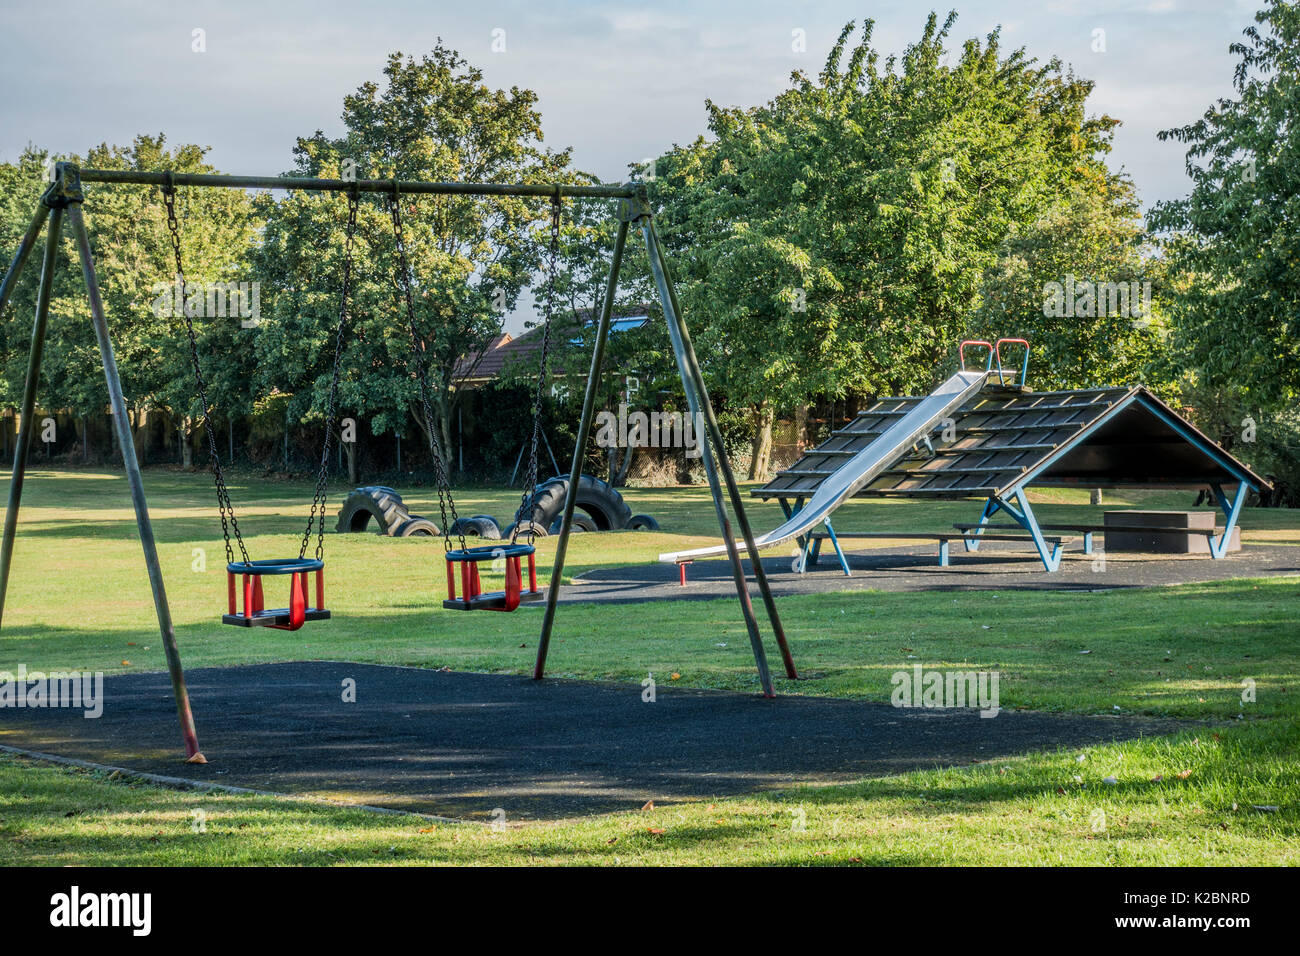 Children's playground / play park, with swings and slide, and nobody around, in the village of Langtoft, Lincolnshire, England, UK. - Stock Image